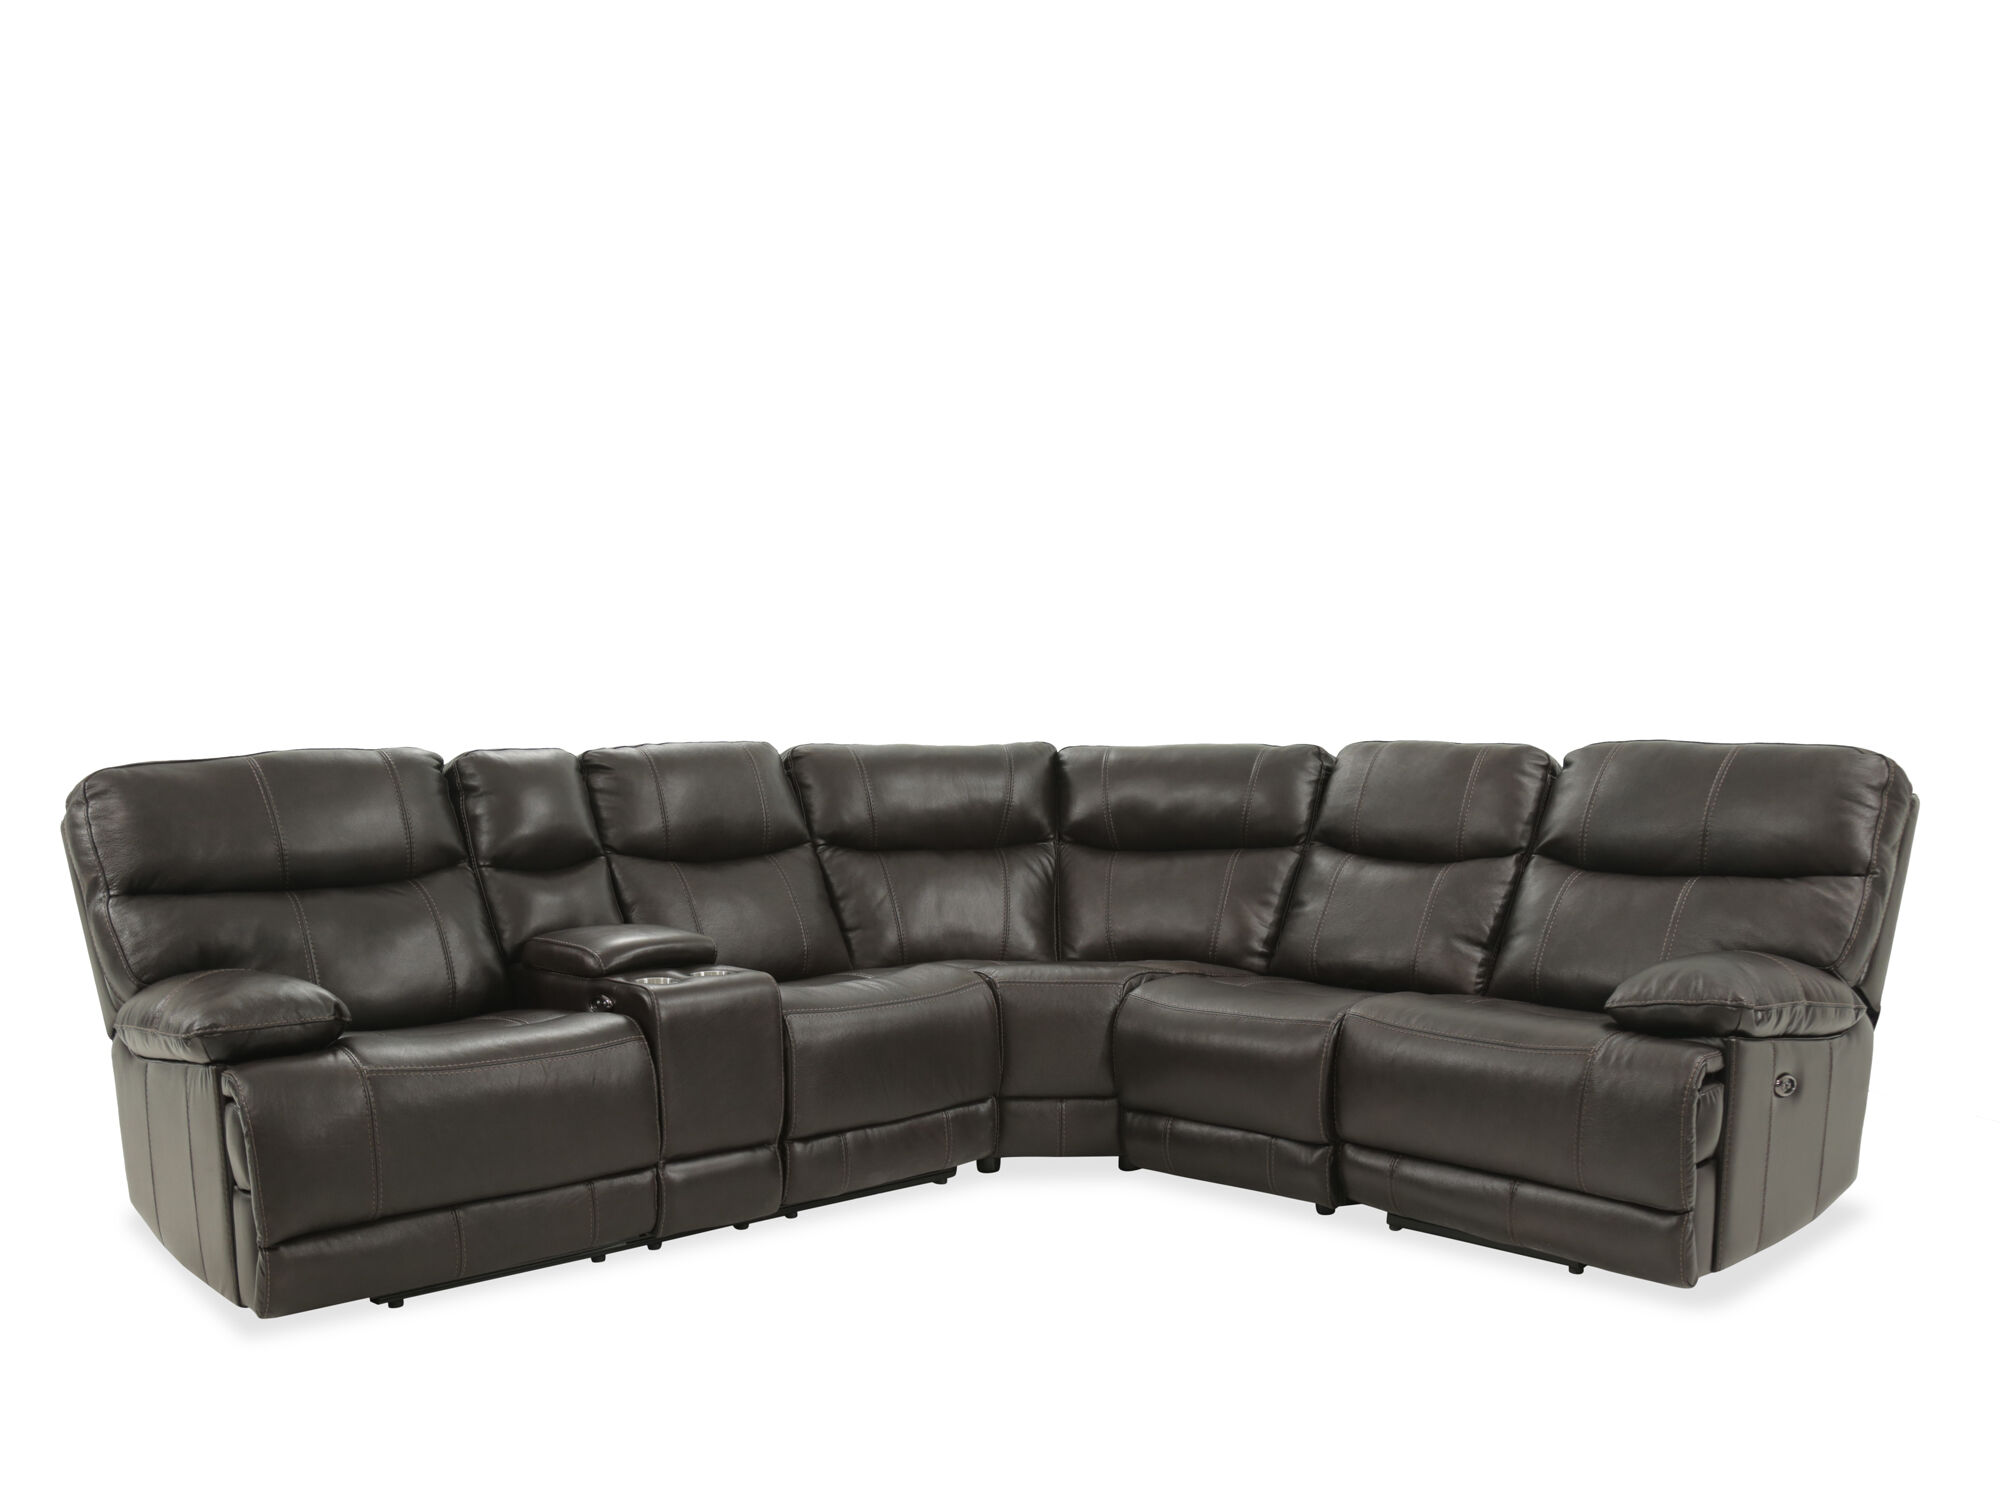 Four Piece Leather Reclining Sectional In Brown ...